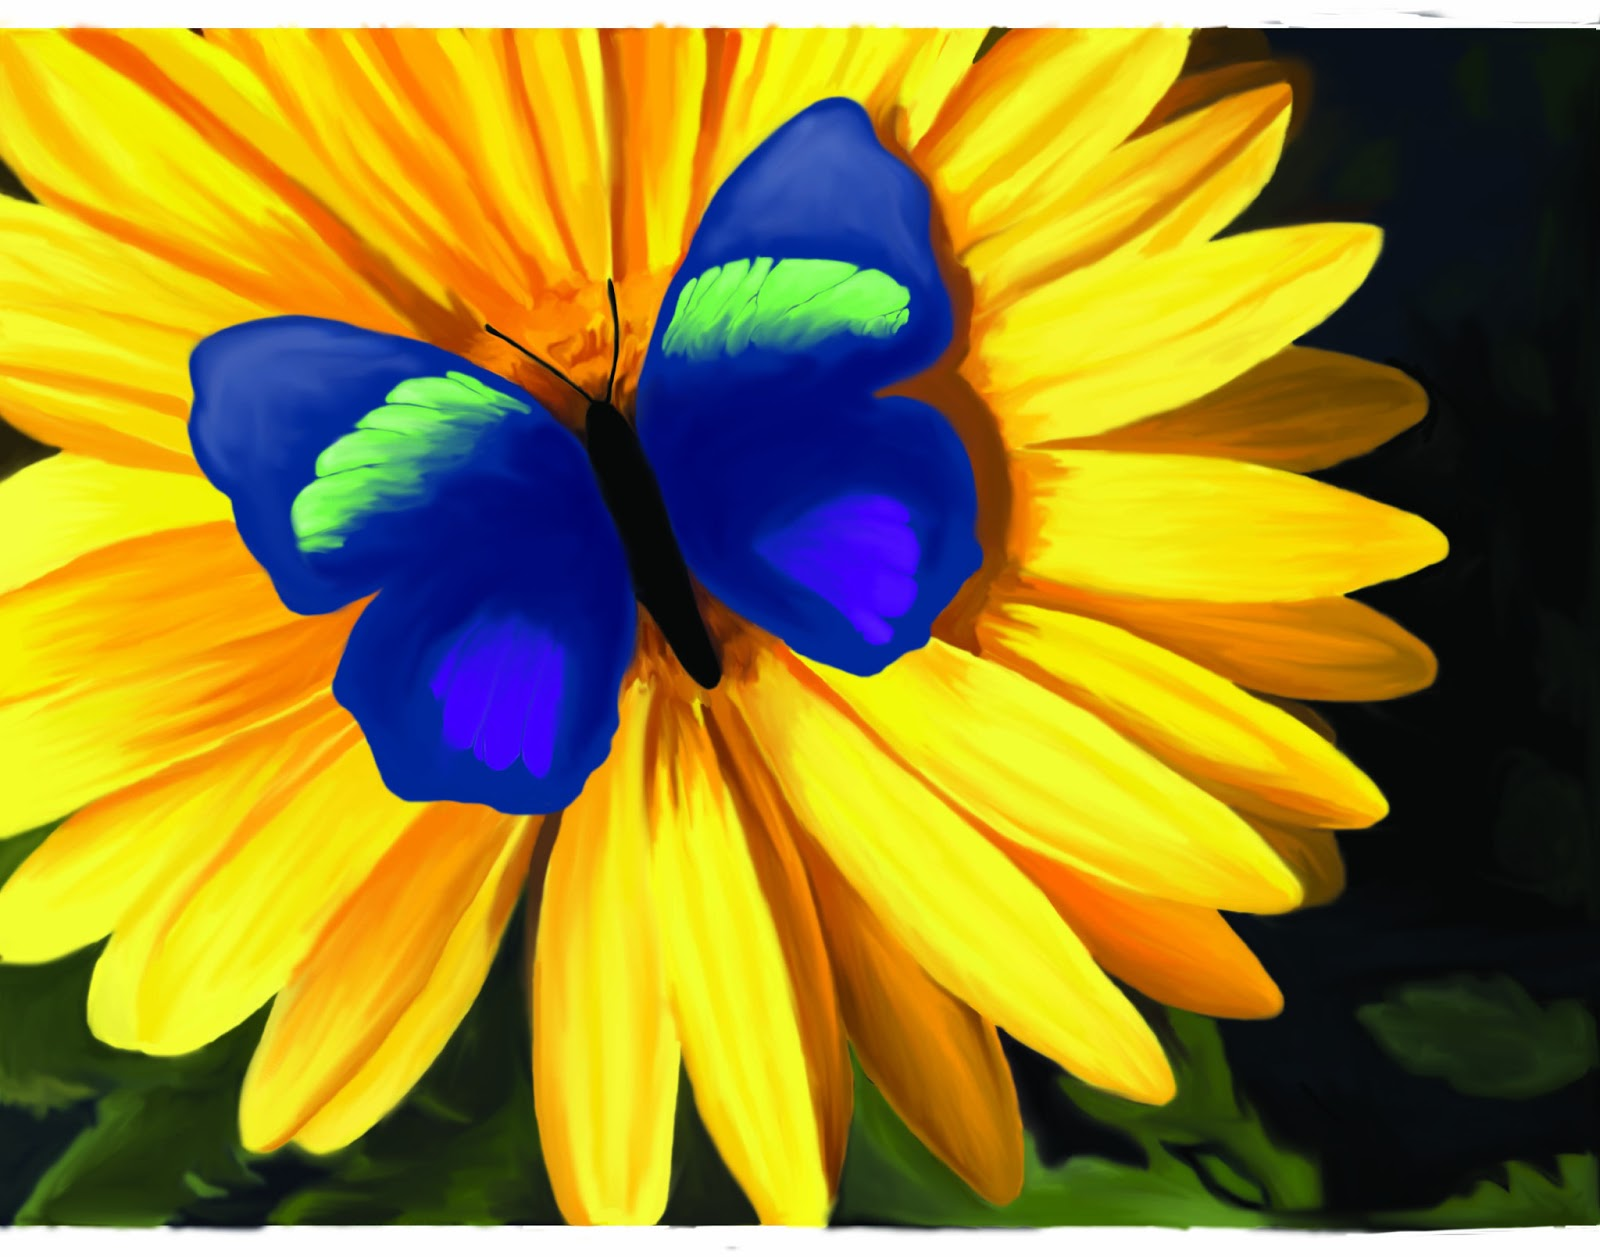 Julia 39 s creative imaging artwork butterfly on a flower for Butterfly on flowers